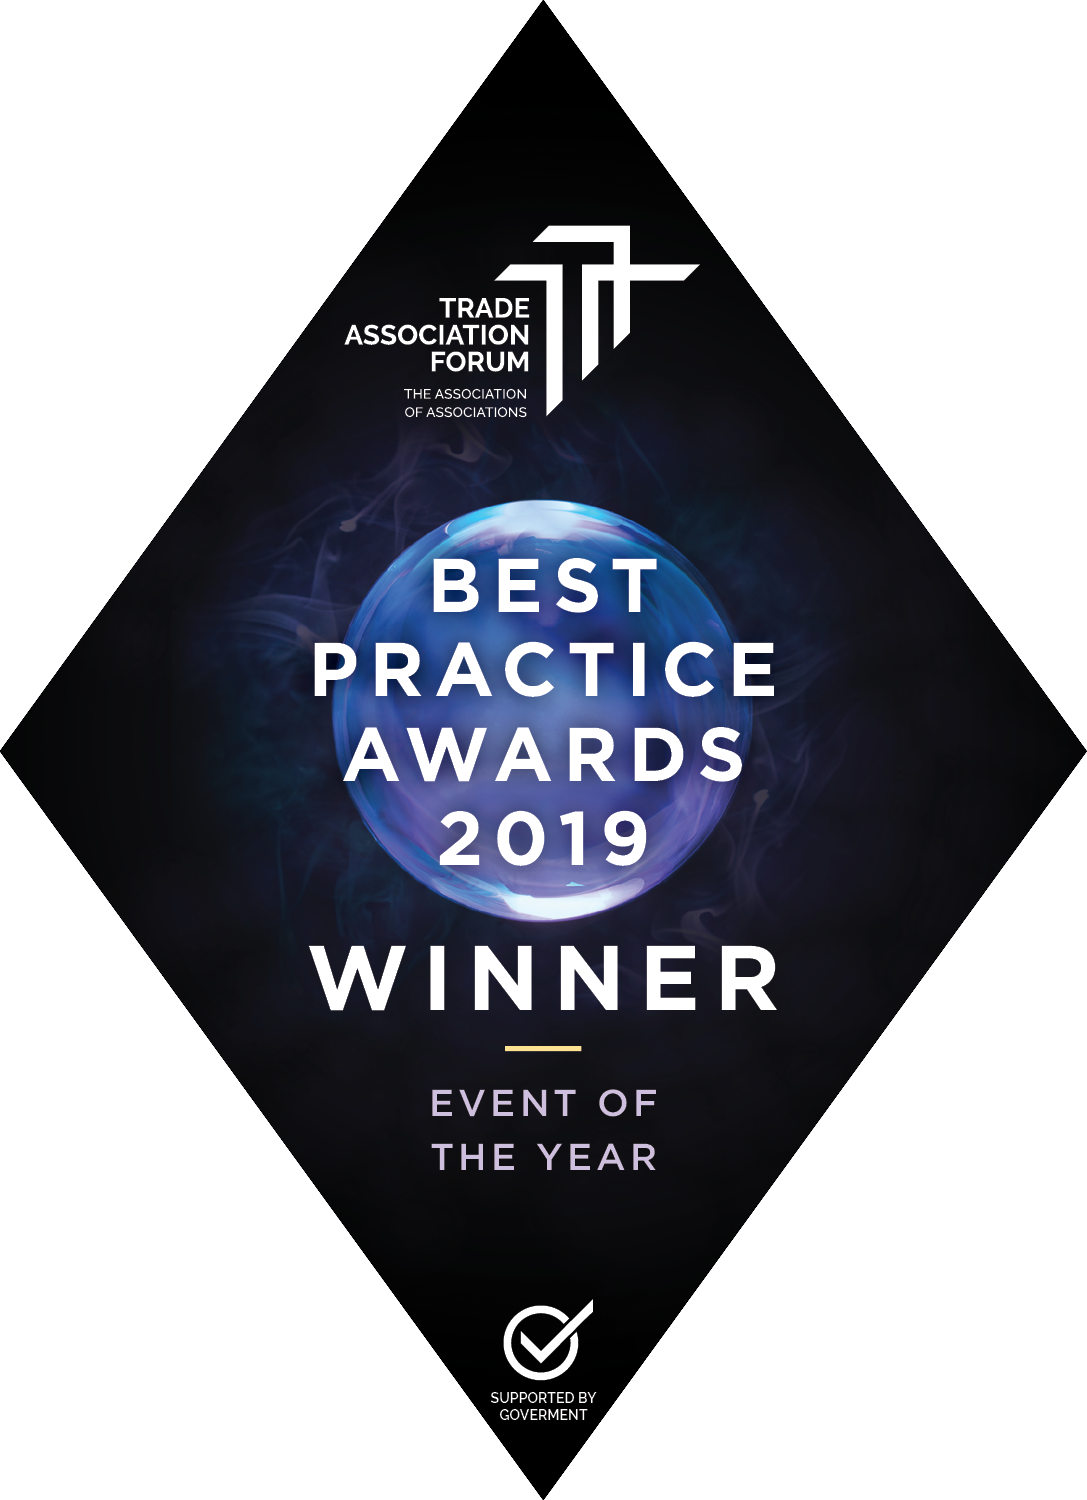 A74989 TAF 2019 Awards WINNER Event of the Year.png